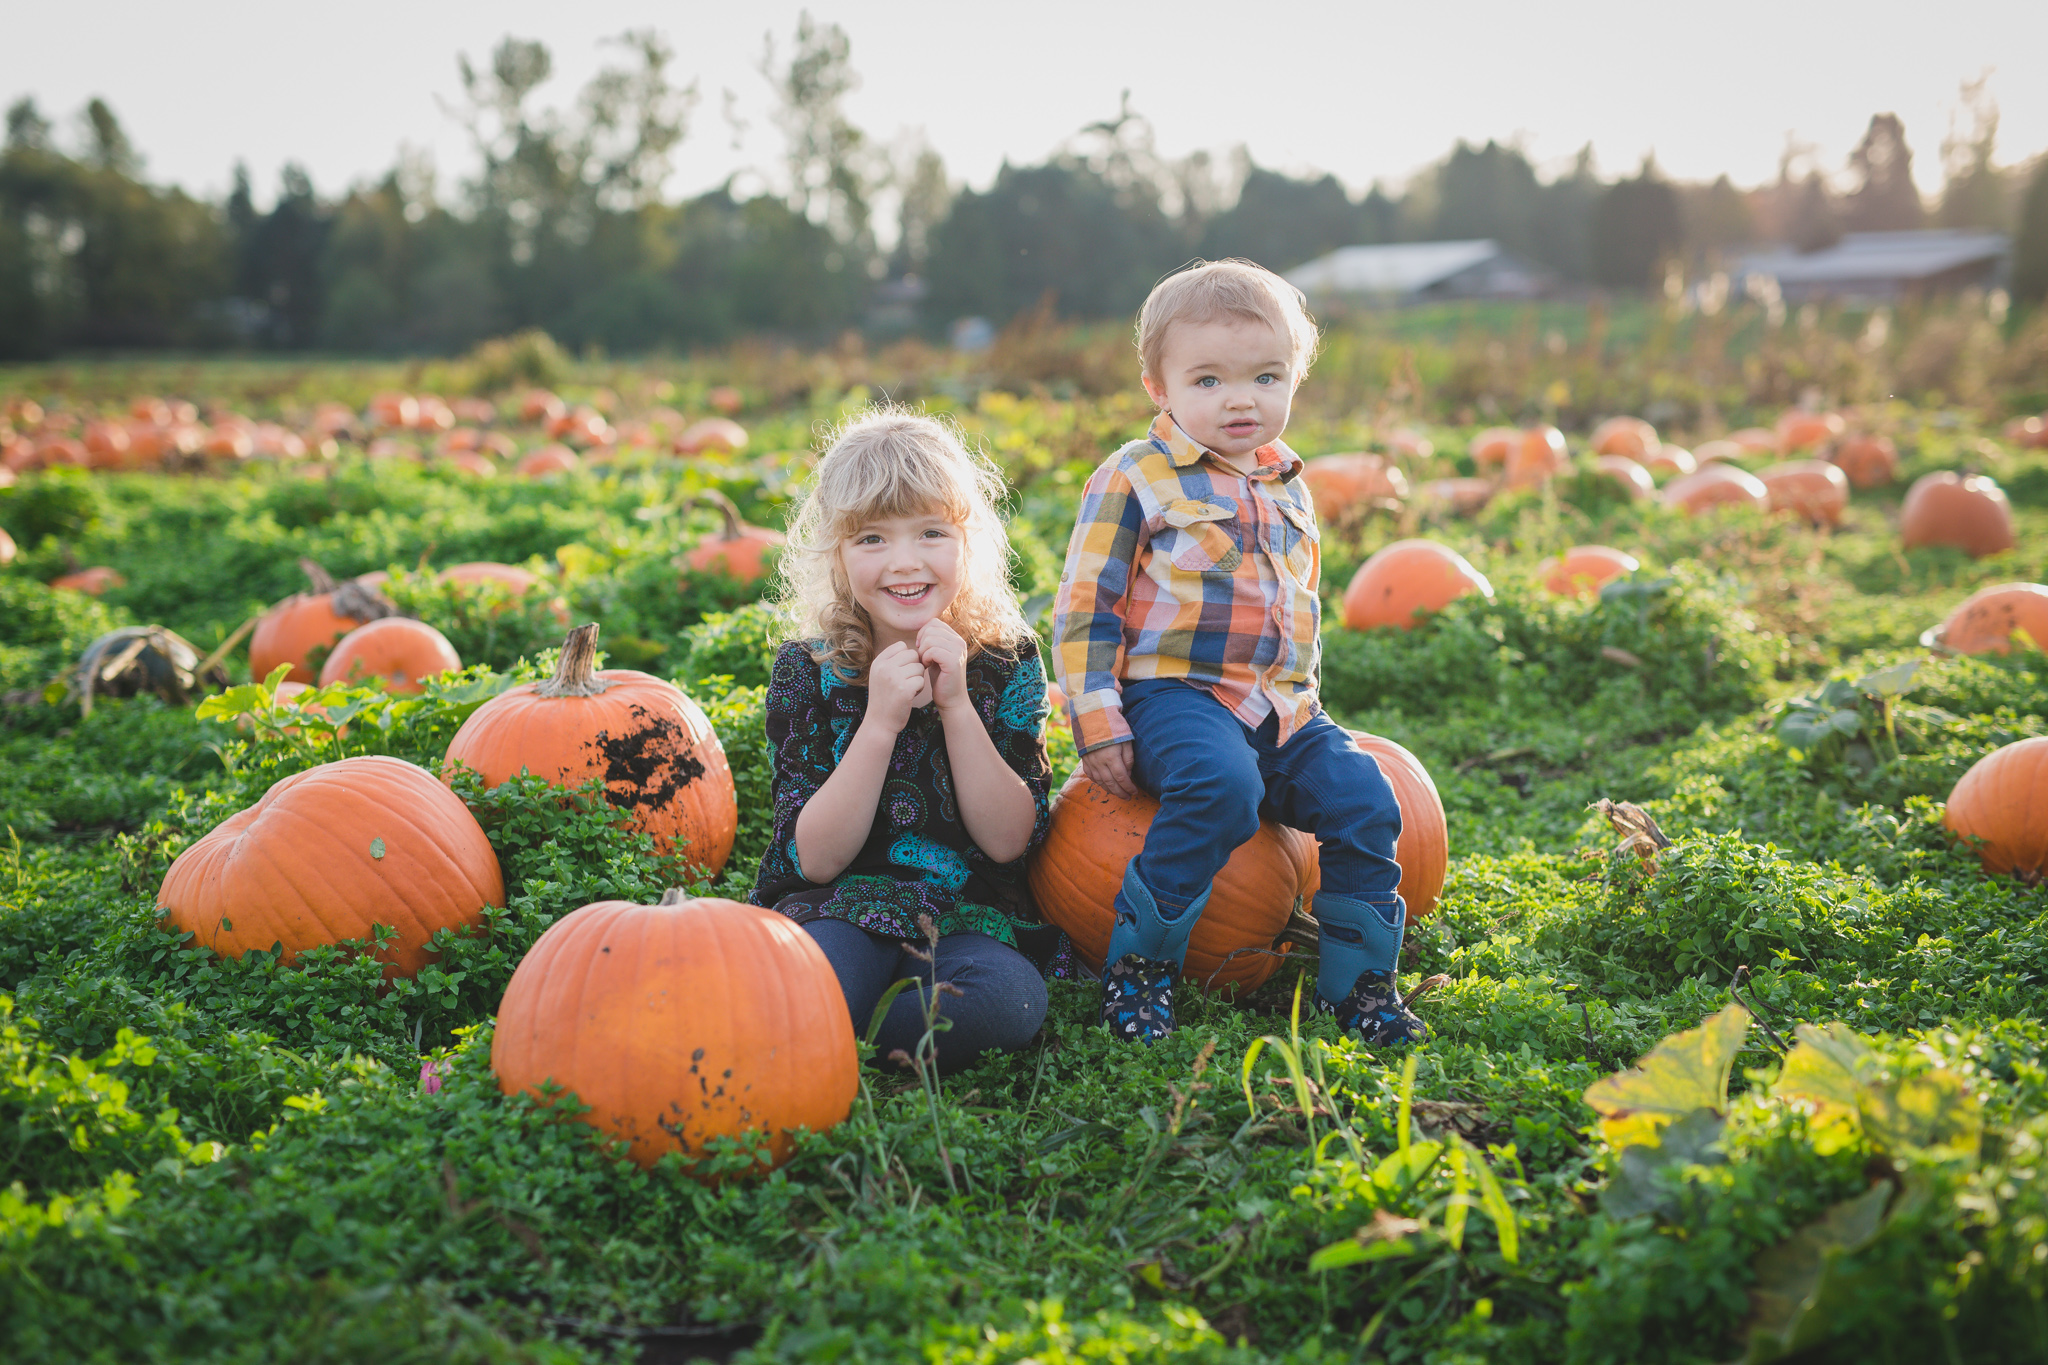 pumpkin patch family photo, pumpkin patch, family photography, fall, rondriso farms, cloverdale, fraser valler, wink photography, fraser valley family photographer